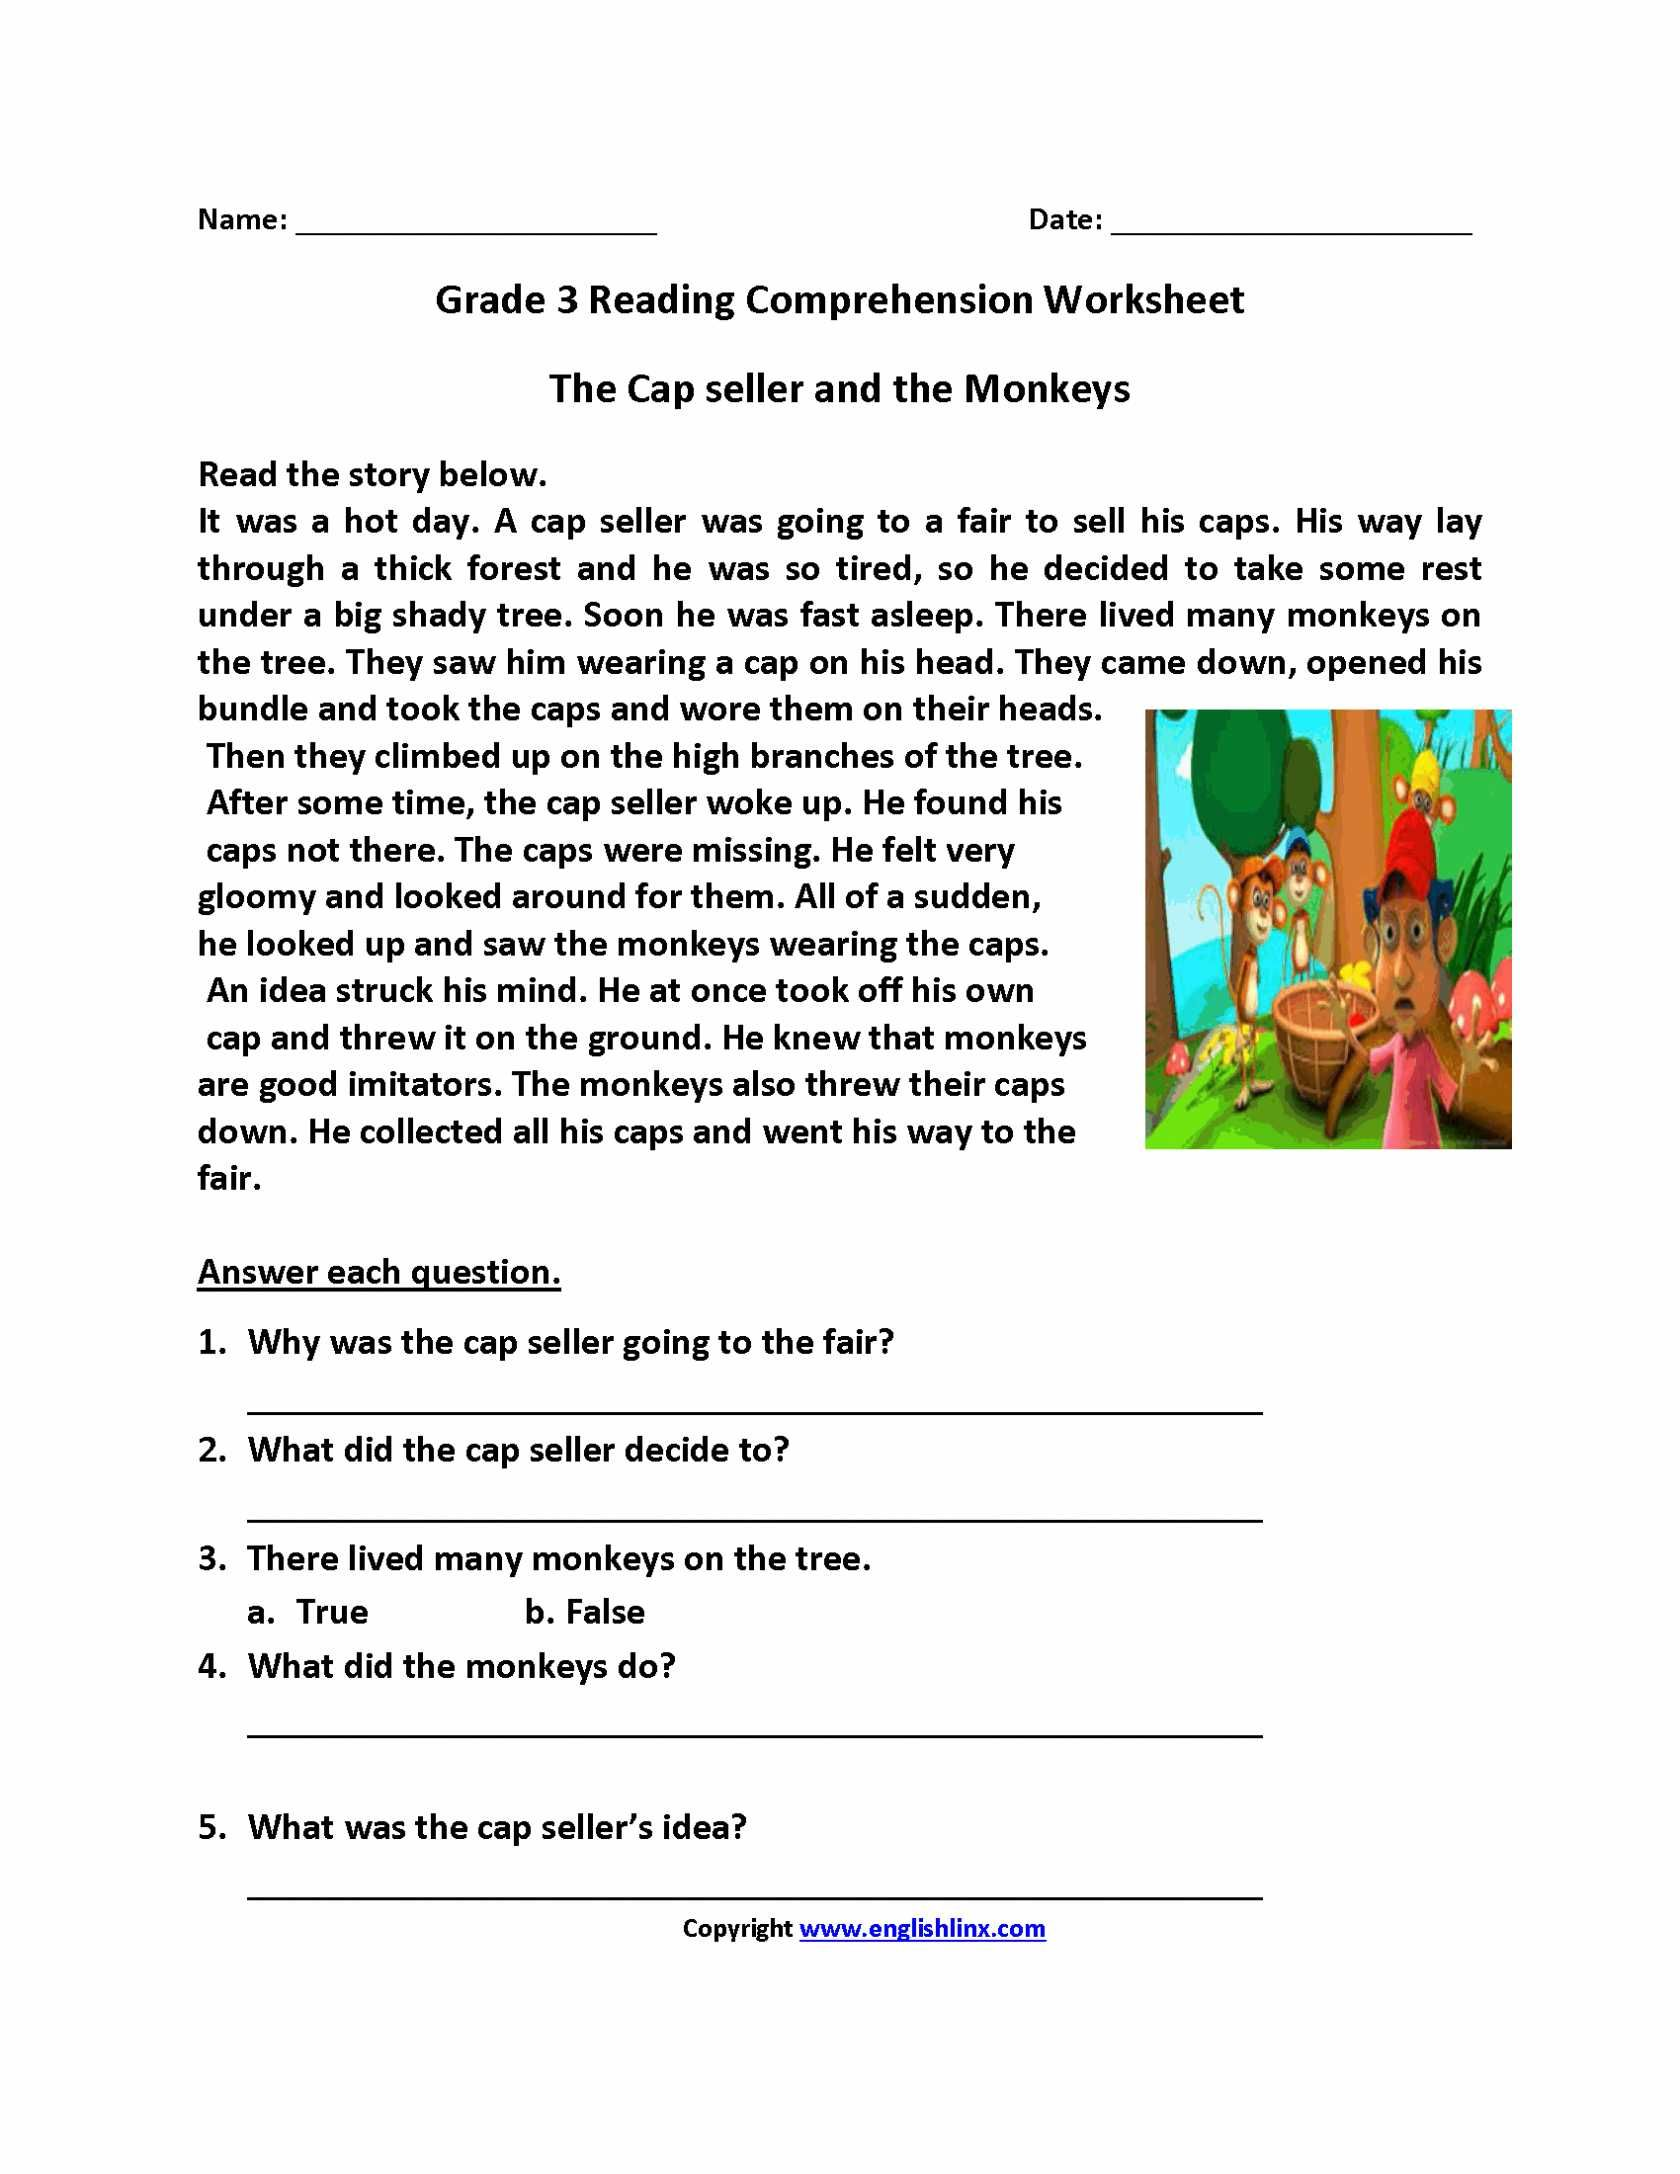 medium resolution of Pin by Amber Jawaid on My saves in 2020   3rd grade reading comprehension  worksheets